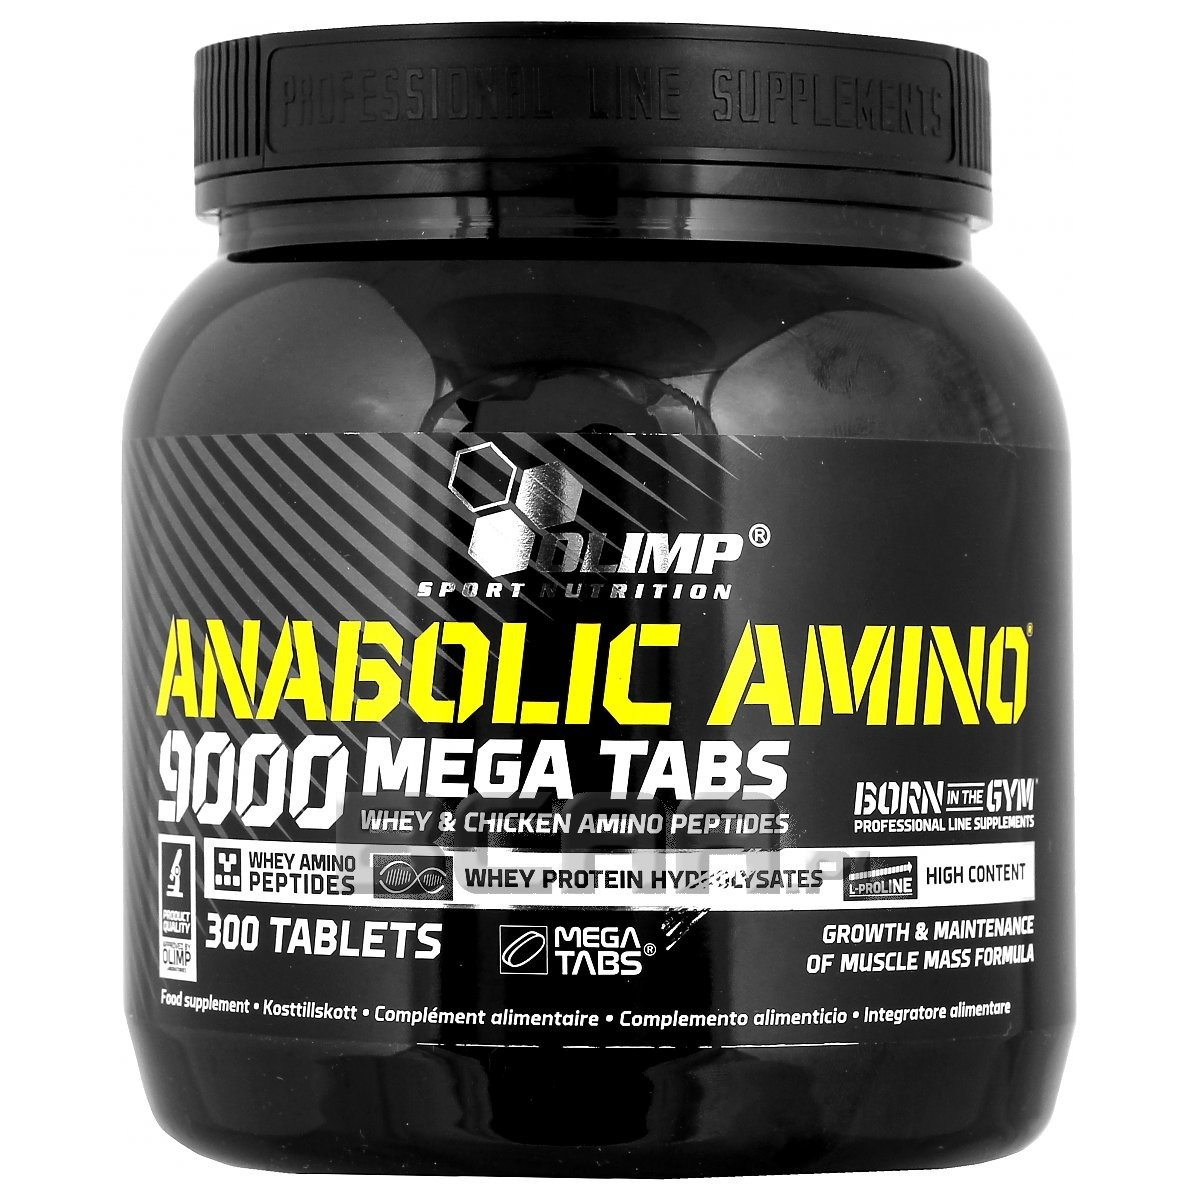 olimp anabolic amino 9000 review